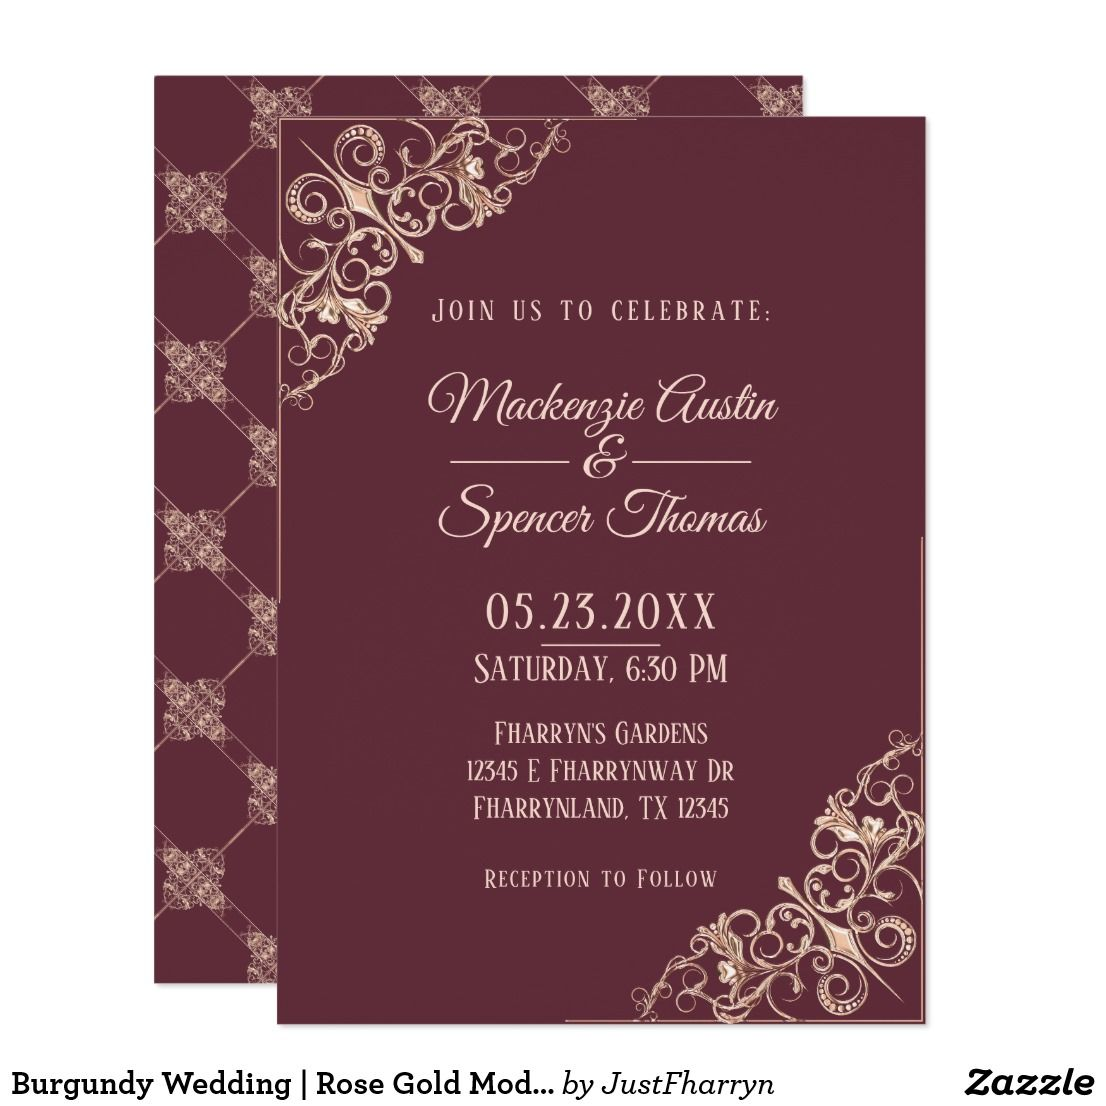 Burgundy Wedding | Rose Gold Modern Art Deco | Card | Wedding ...